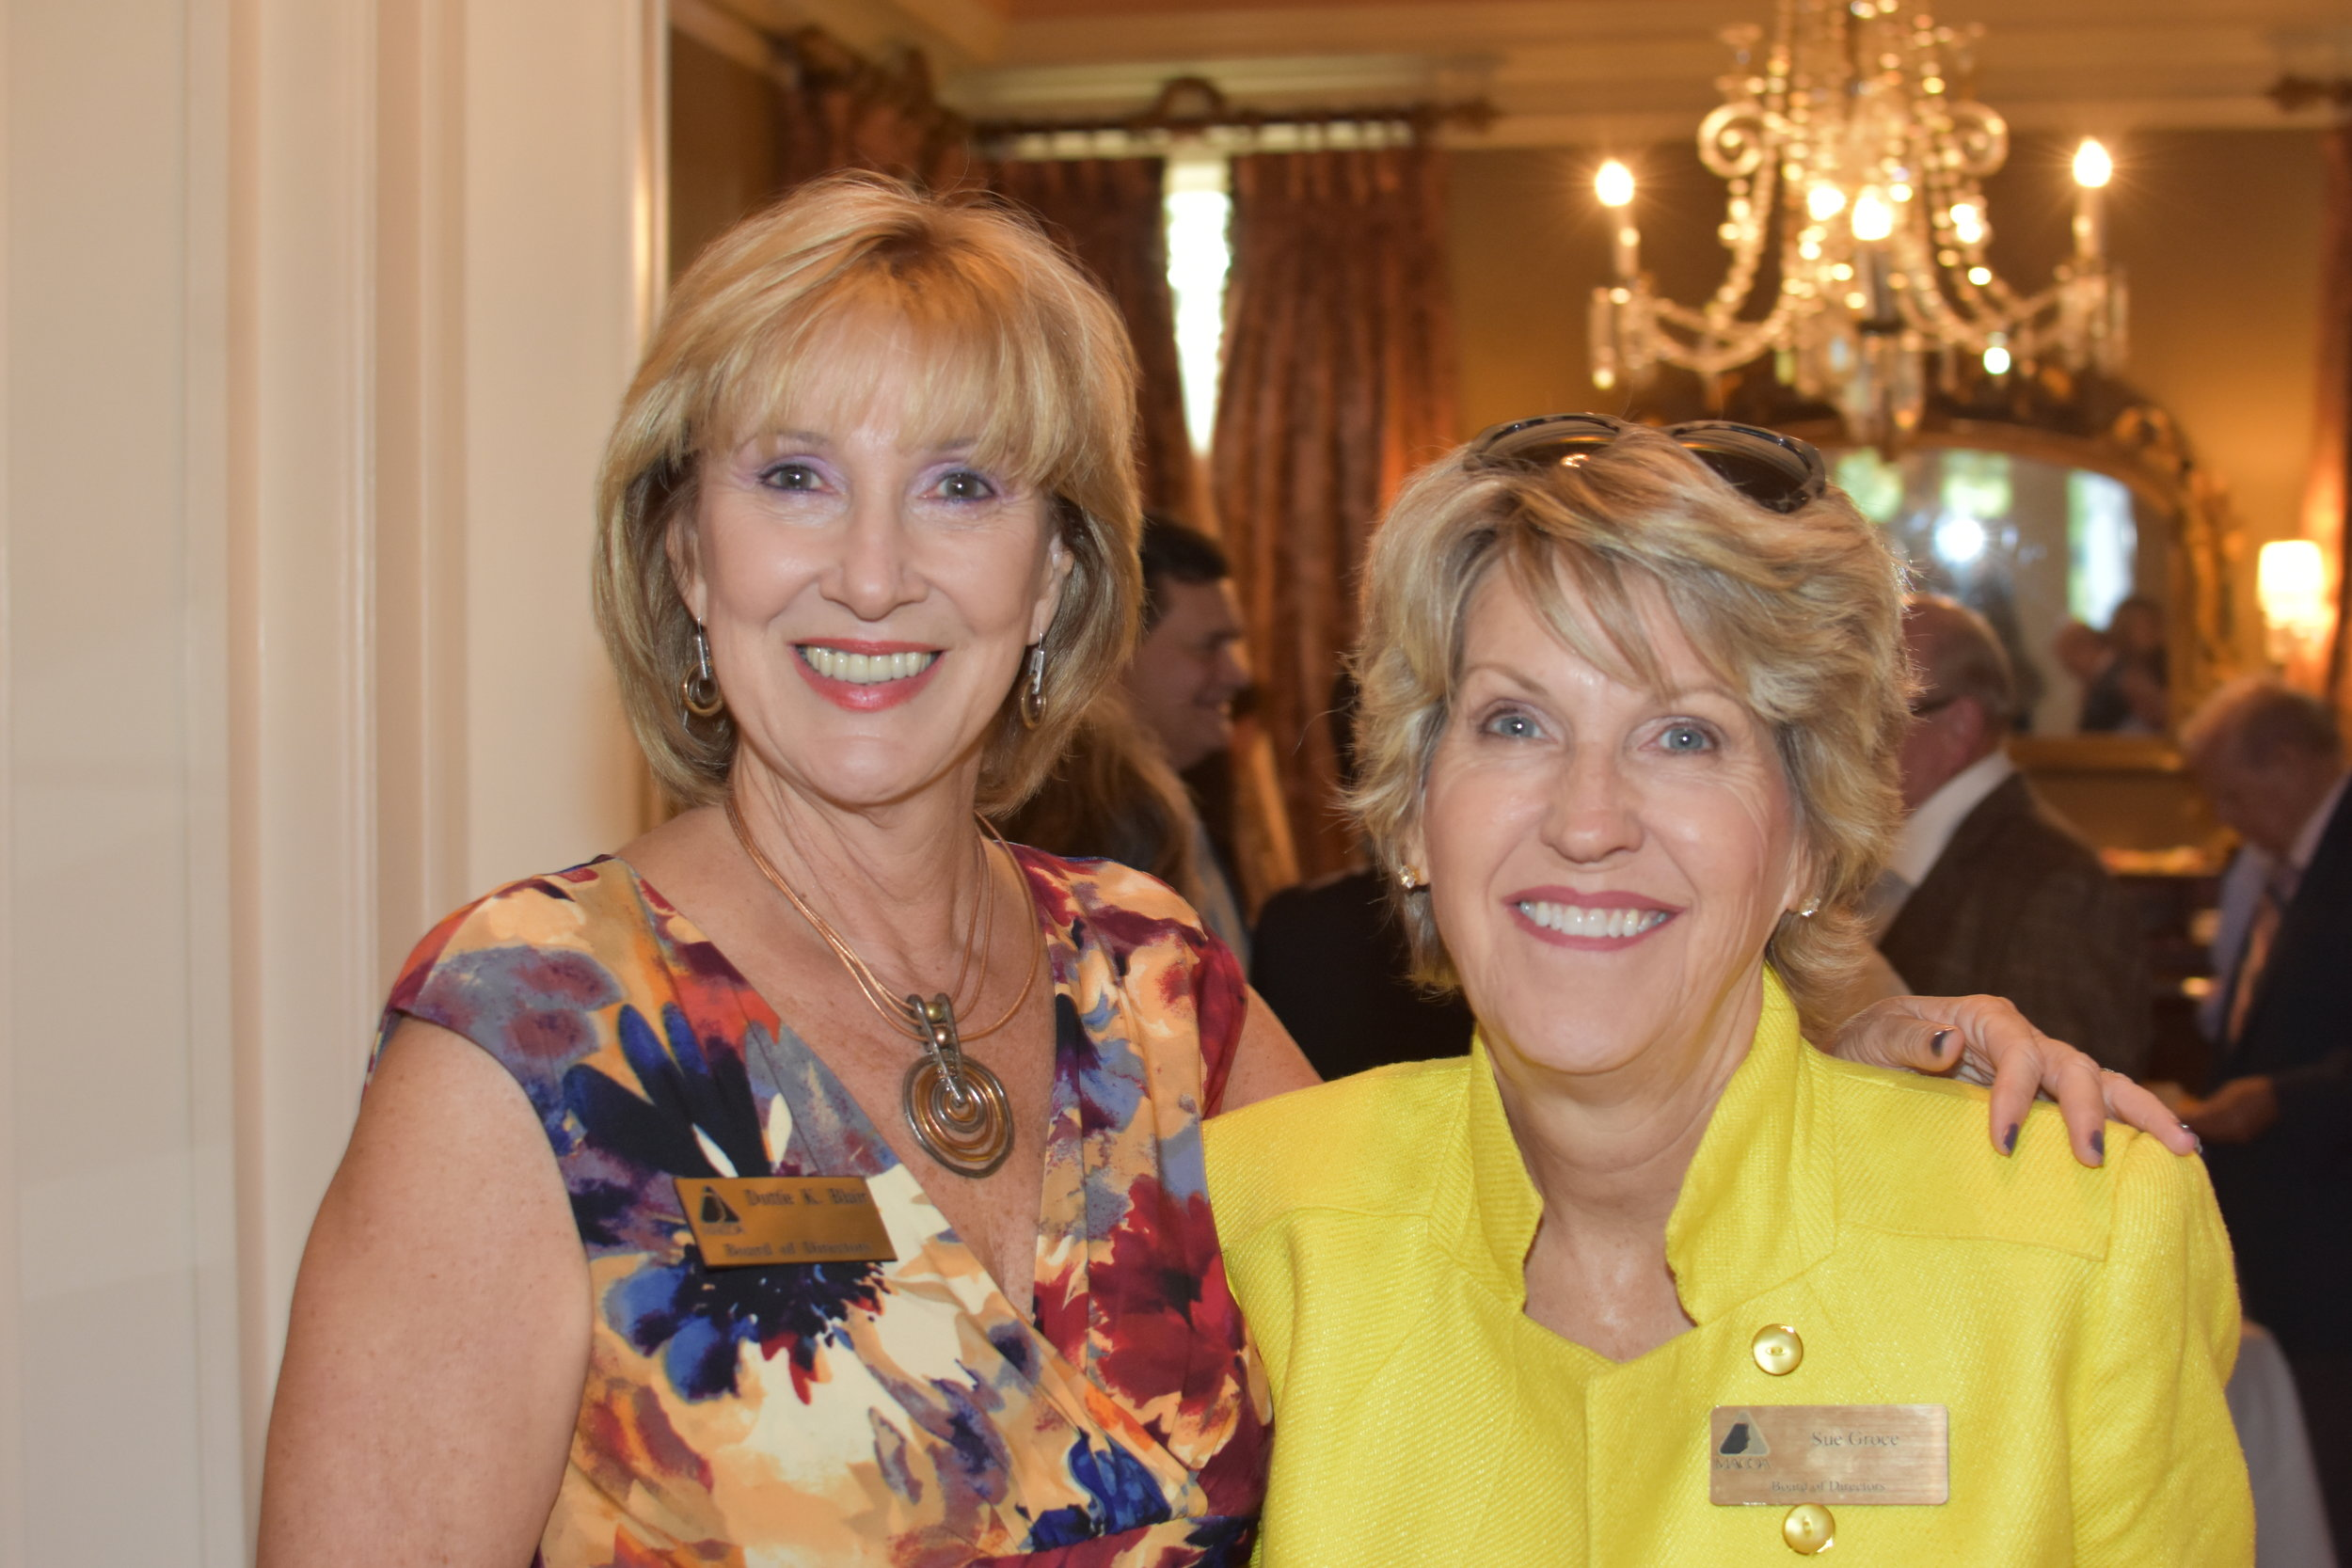 3-Dottie Blair-Donor Recognition Committee Chair with Sue Groce- MACOA Ex-Officio Board member.JPG